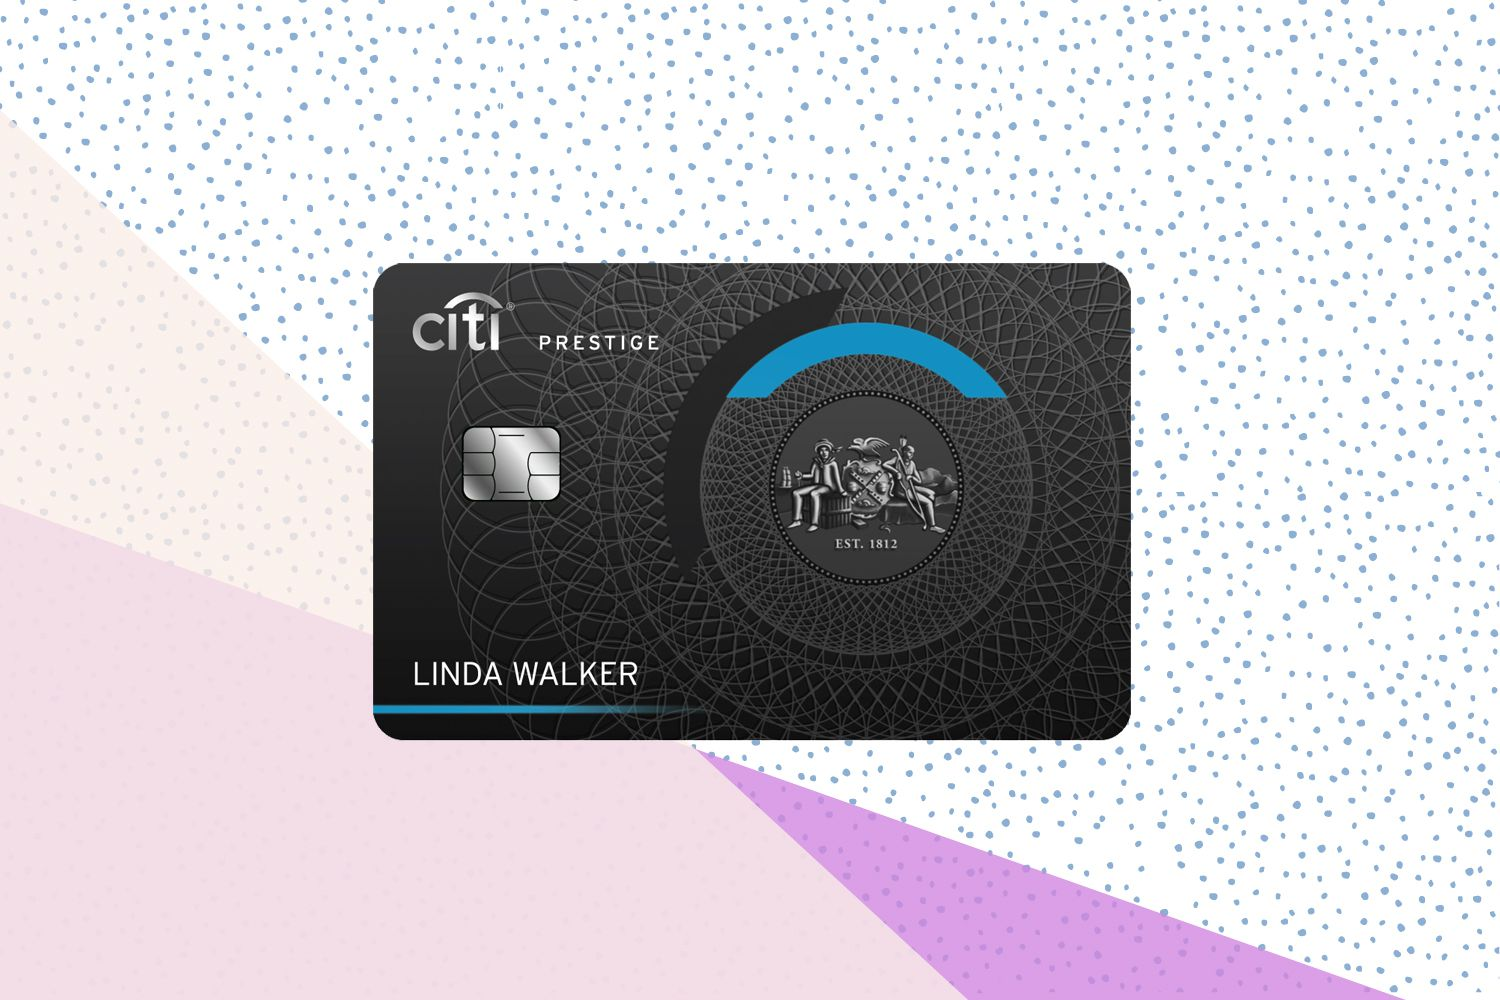 Citi Prestige Credit Card Review: Worth the Fee?